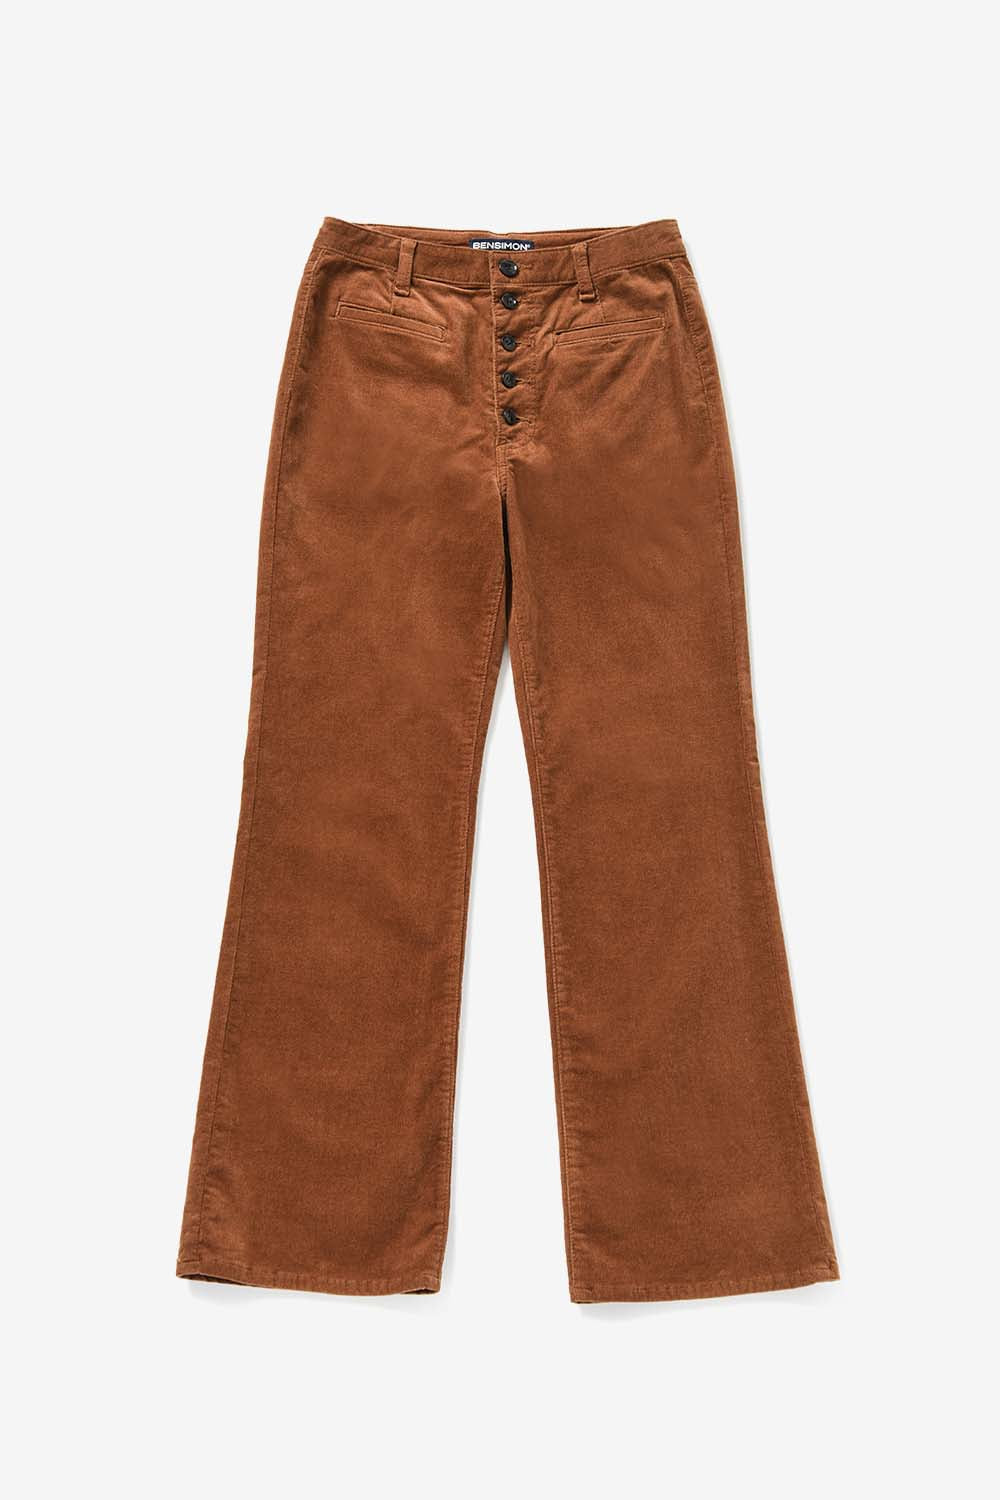 Button Point Corduroy Pants_Brown BS9FPT405BR